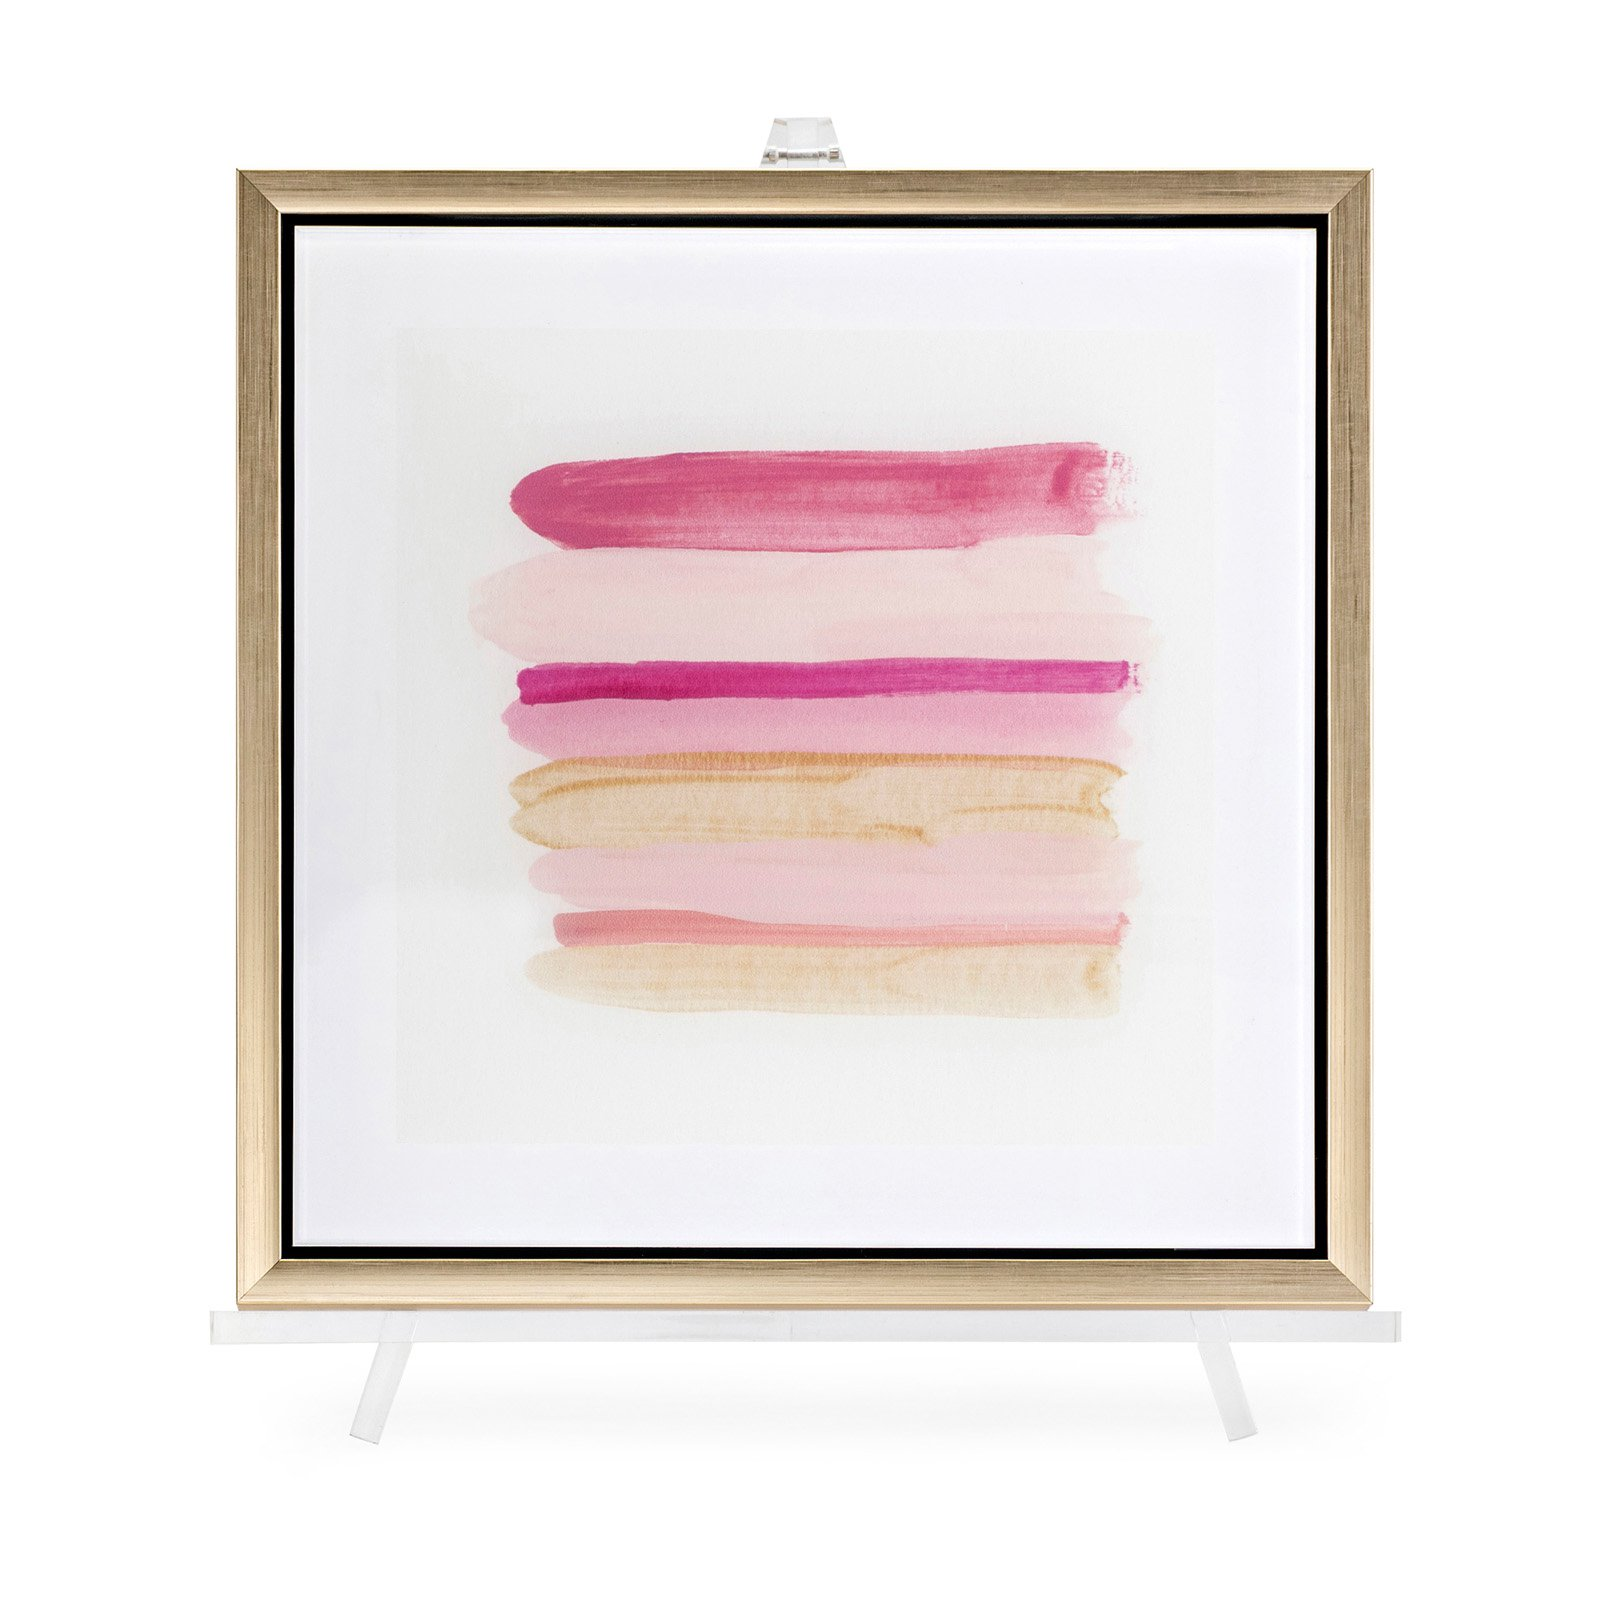 Trisha Yearwood Pink Line Acrylic Framed Wall Art with Easel